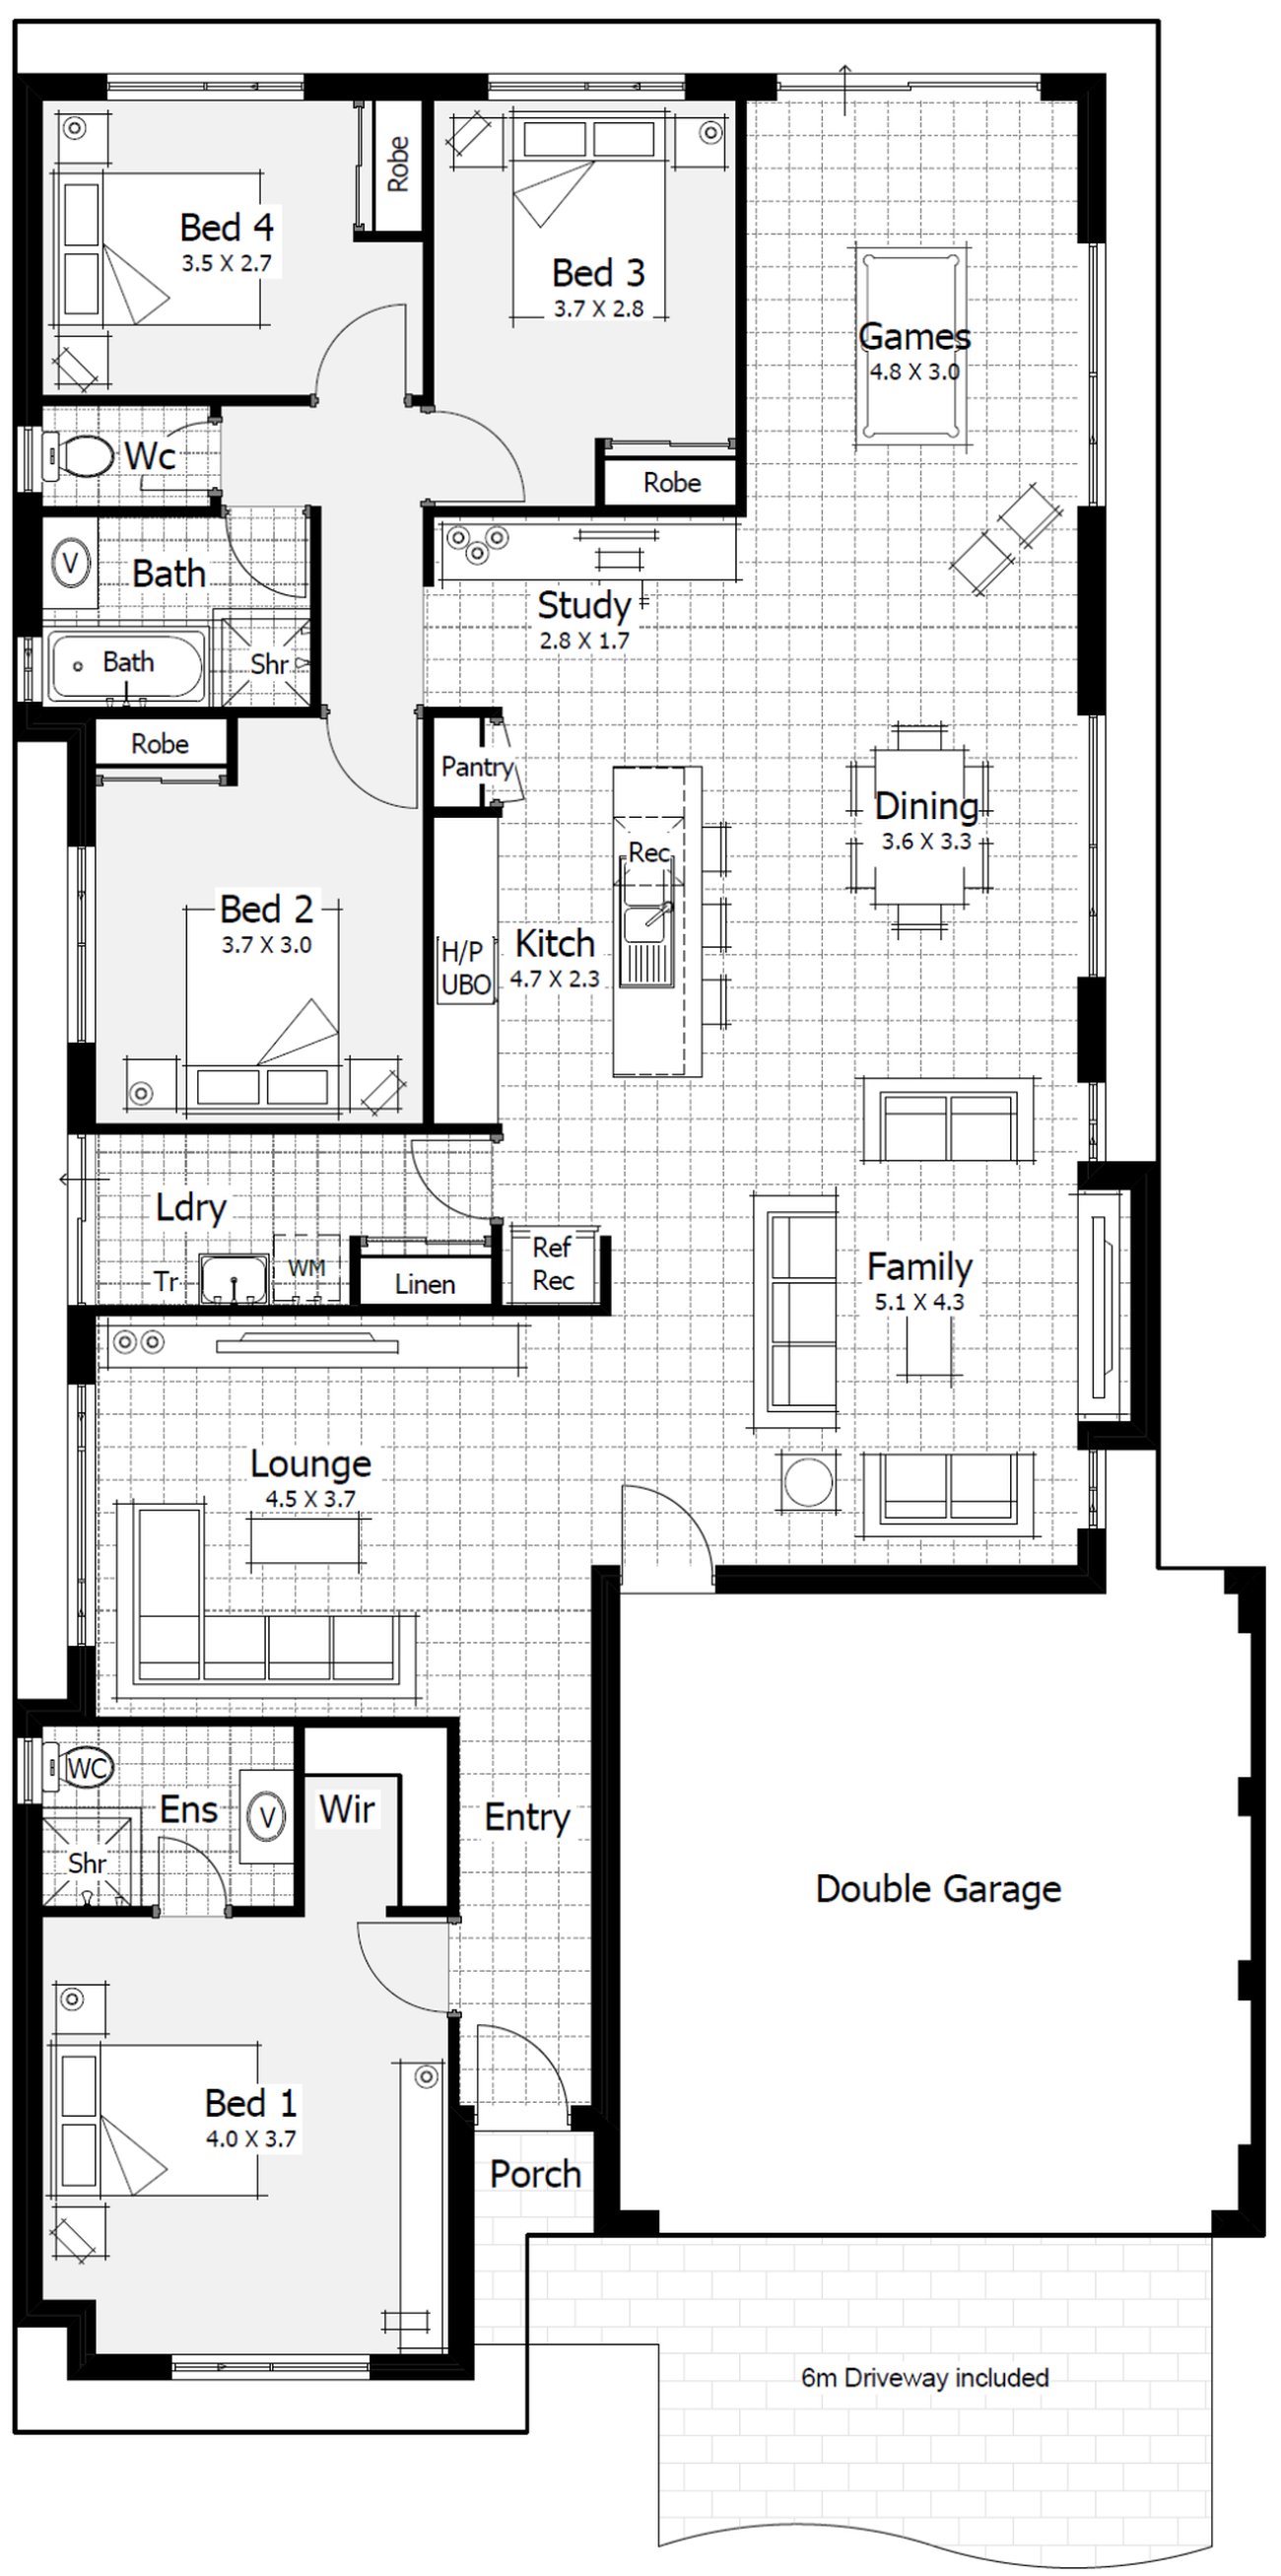 12 to 14 Metre Wide Home Designs | Home Buyers Centre | HP Perth ...